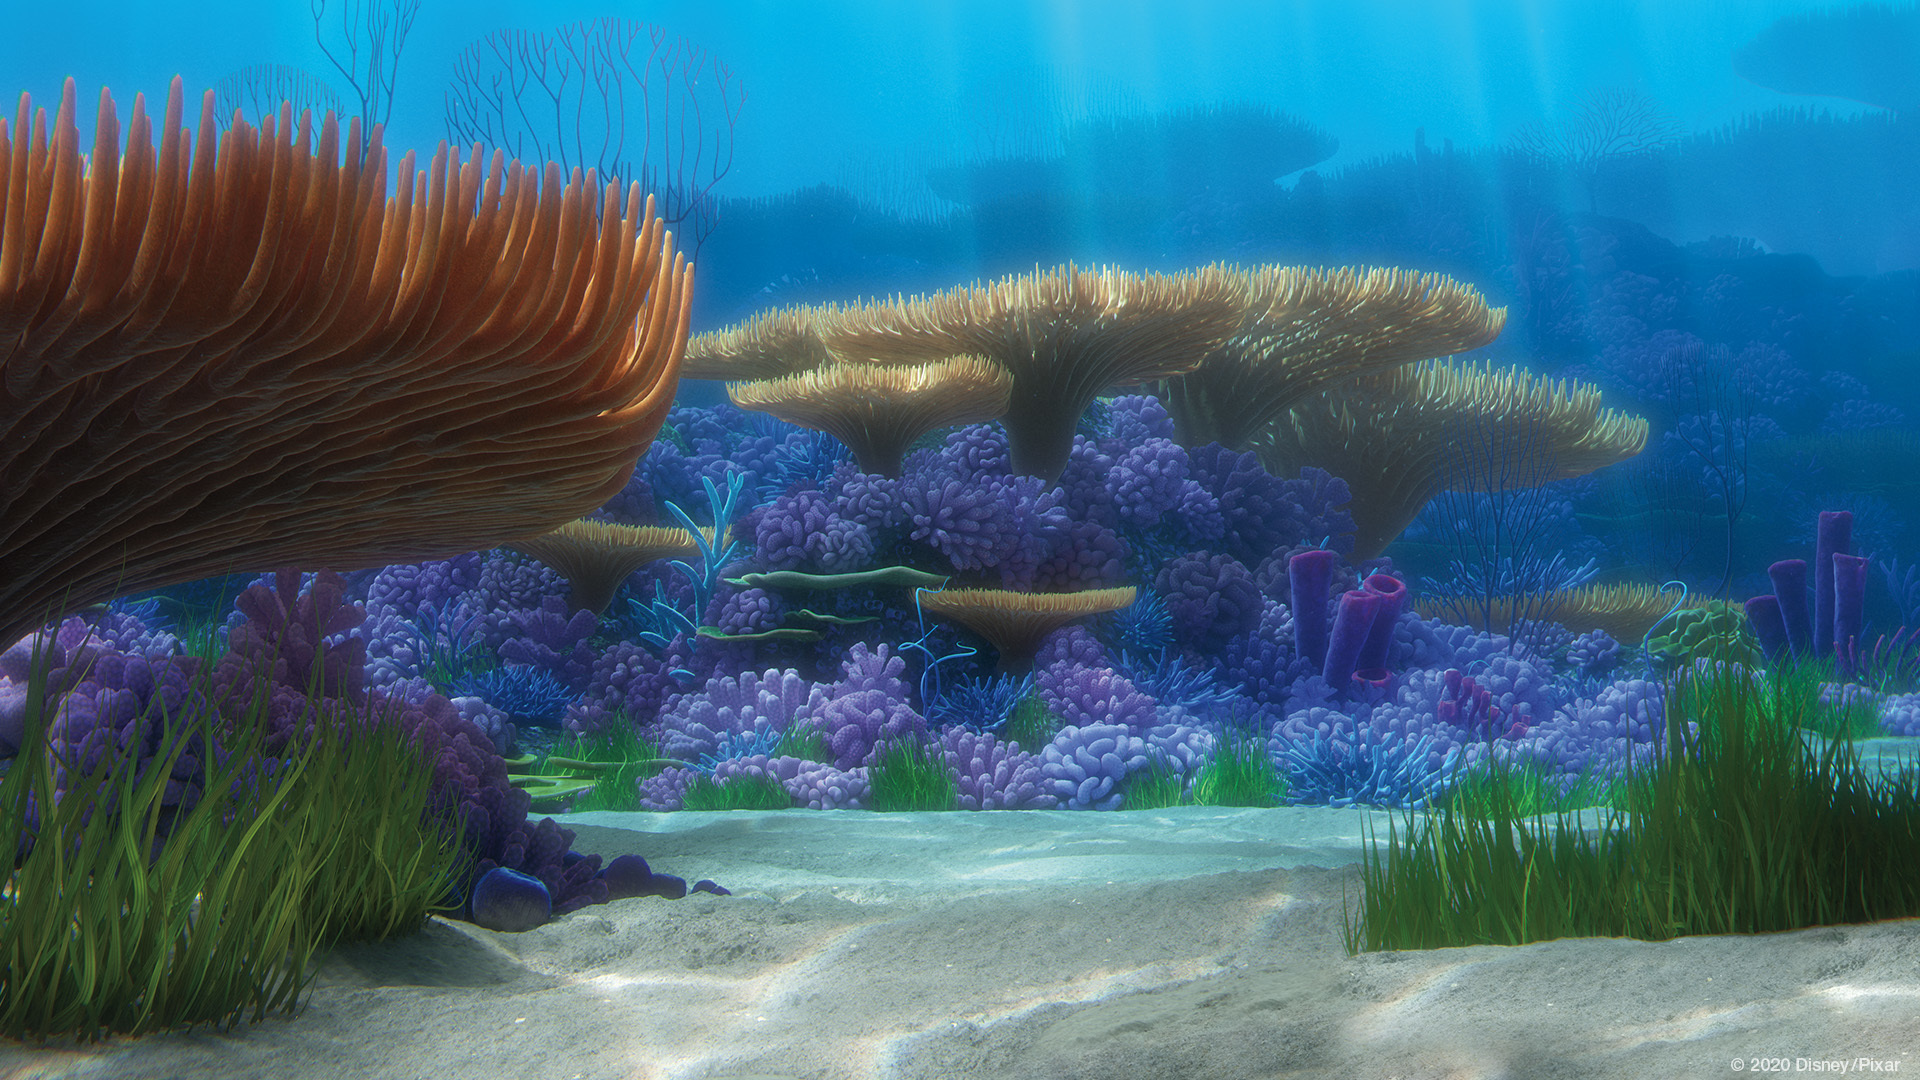 Finding Nemo coral reef. Virtual background to use on Zoom, Microsoft Teams, Skype, Google Meet, WebEx or any other compatible app.